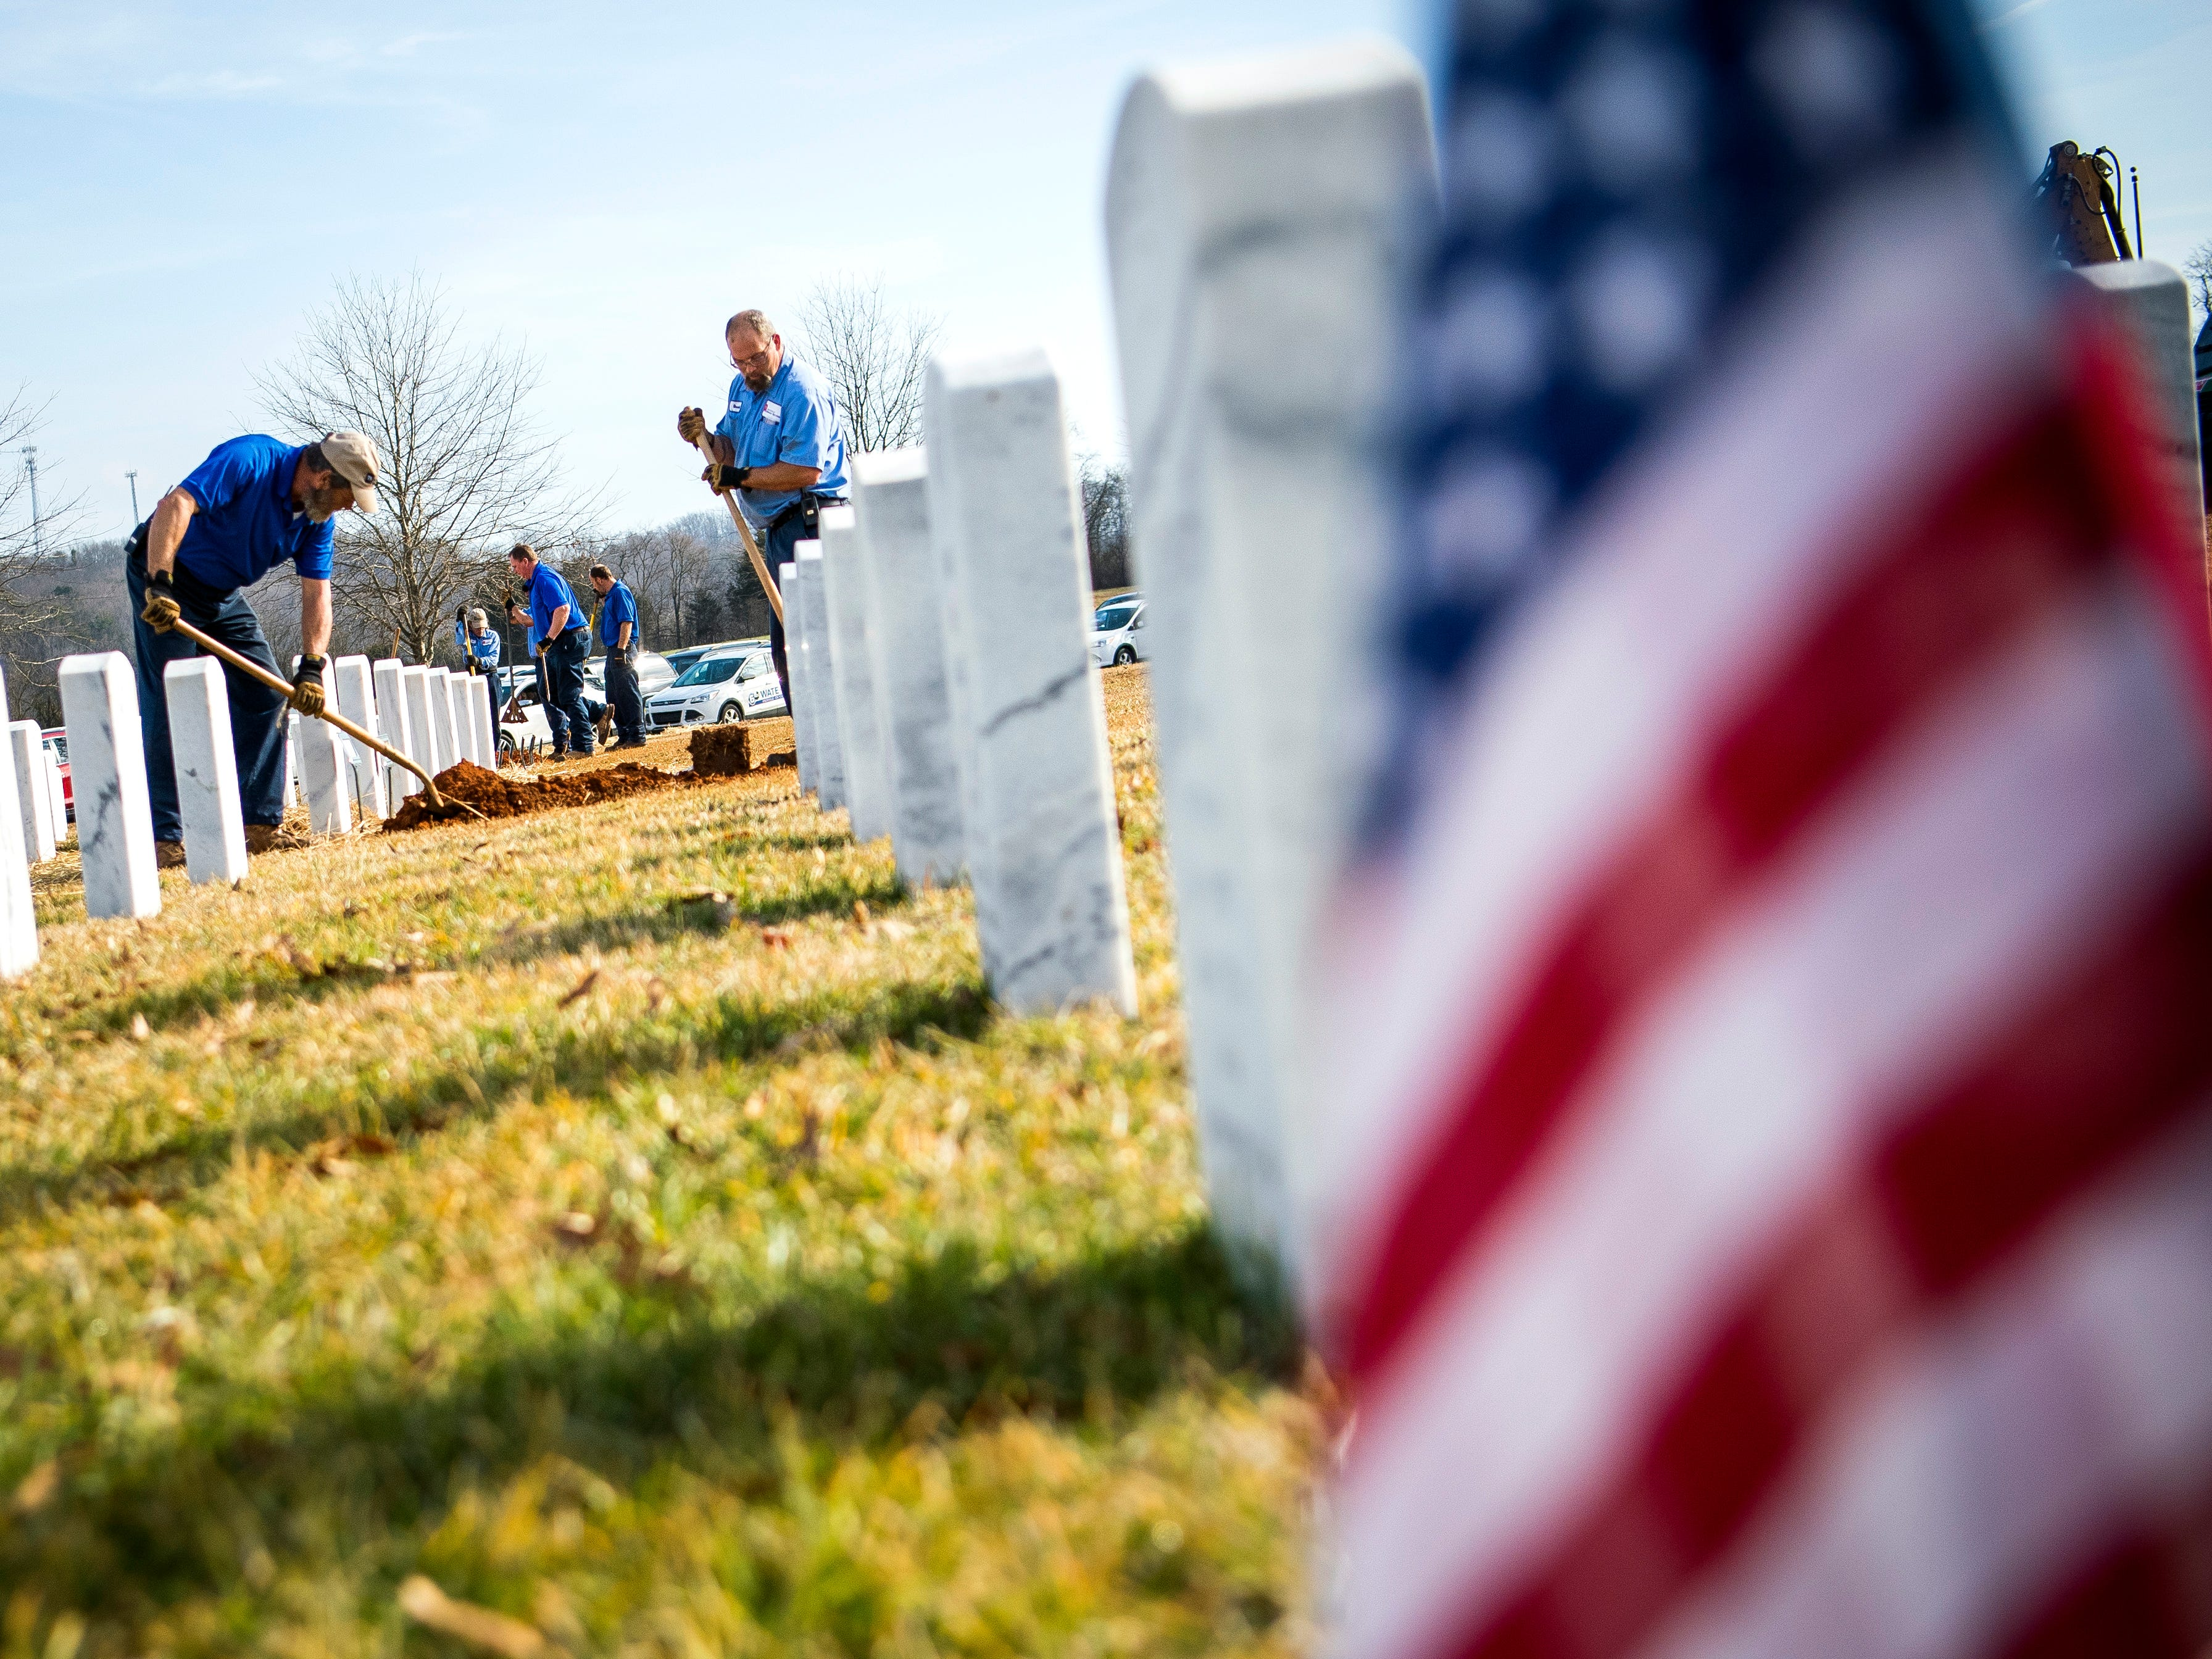 Cemetery workers finish burying the urns after a military memorial service for seven East Tennessee veterans held at the East Tennessee Veterans Cemetery on Gov. John Sevier Highway on Tuesday, February 5, 2019.